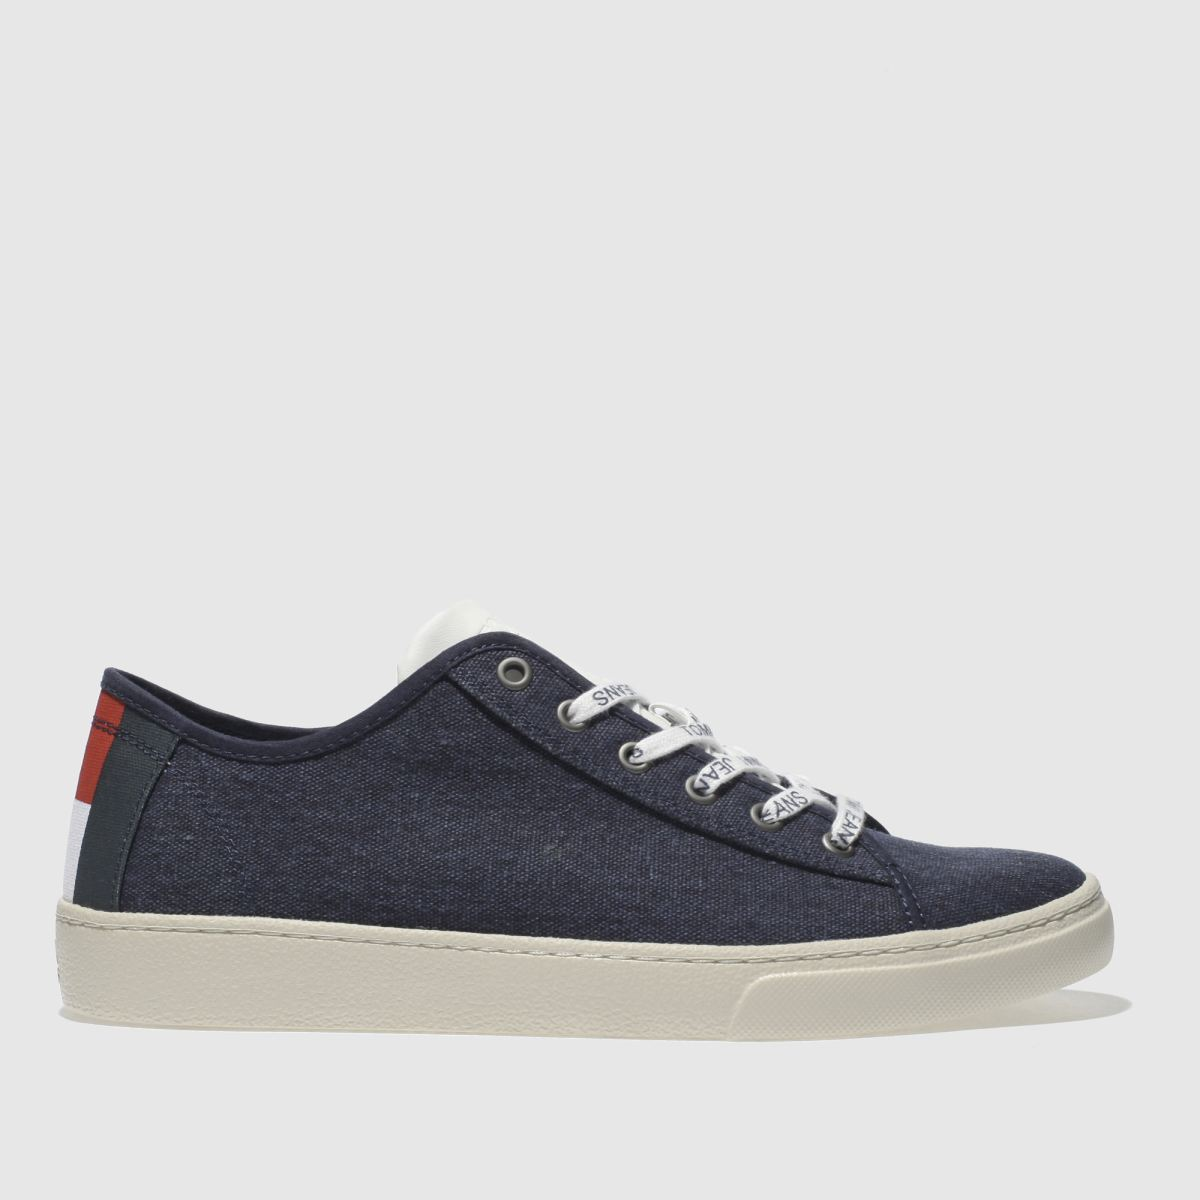 Tommy Hilfiger Tommy Hilfiger Navy & White Tj Light Textile Low Trainers